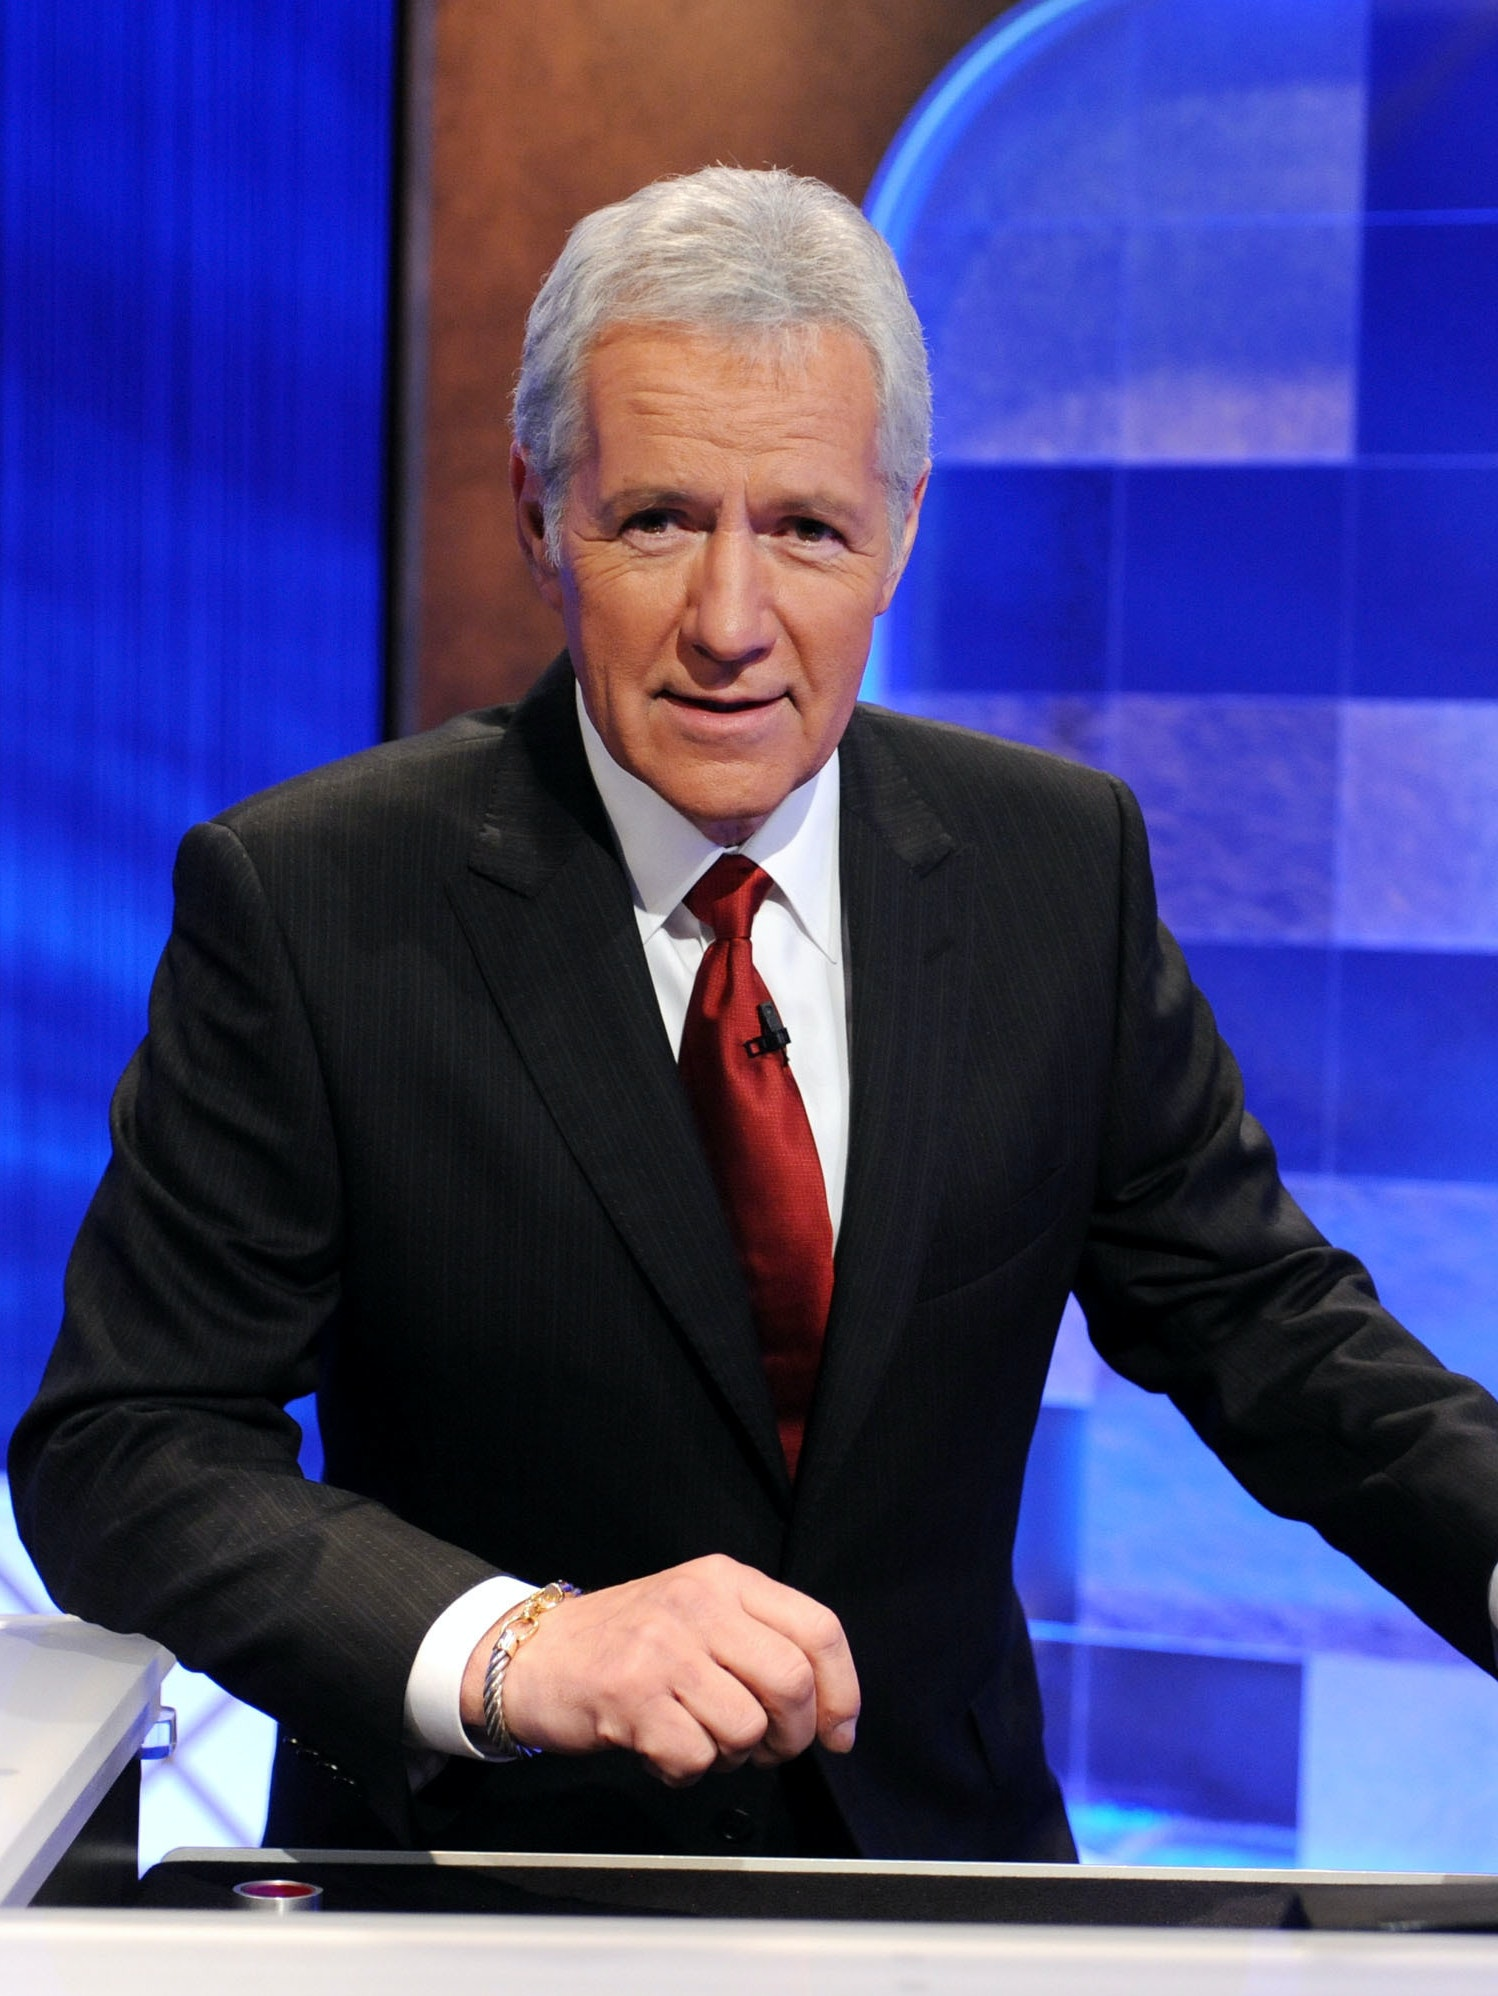 CULVER CITY, CA - APRIL 17:  Game show host Alex Trebek poses on the set of the 'Jeopardy!' Million Dollar Celebrity Invitational Tournament Show Taping on April 17, 2010 in Culver City, California.  (Photo by Amanda Edwards/Getty Images)